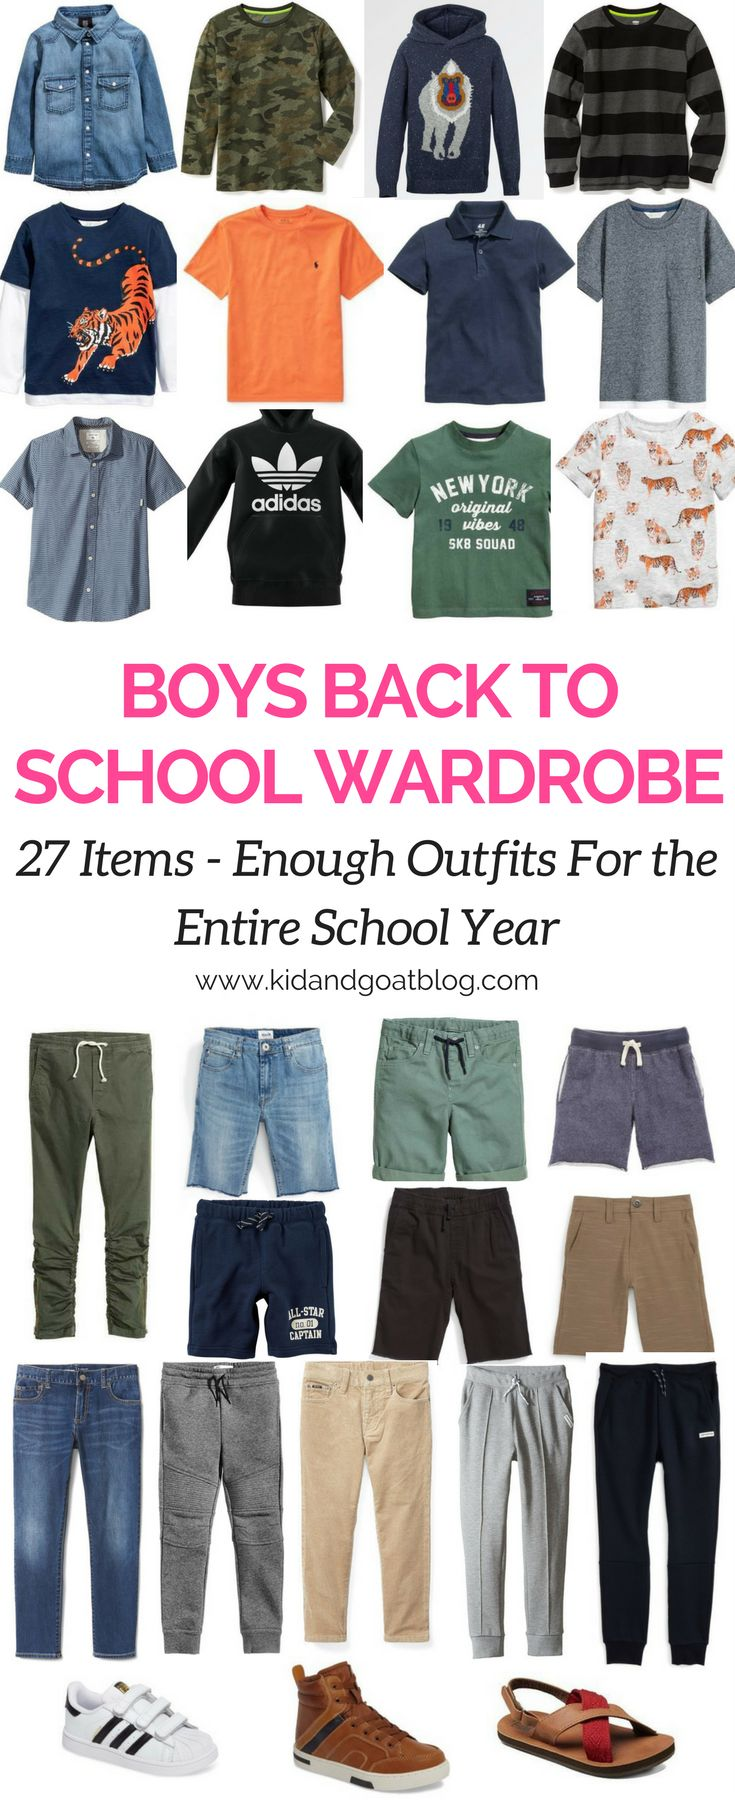 Boys Back to School Outfits – 27 Piece Wardrobe For the Year